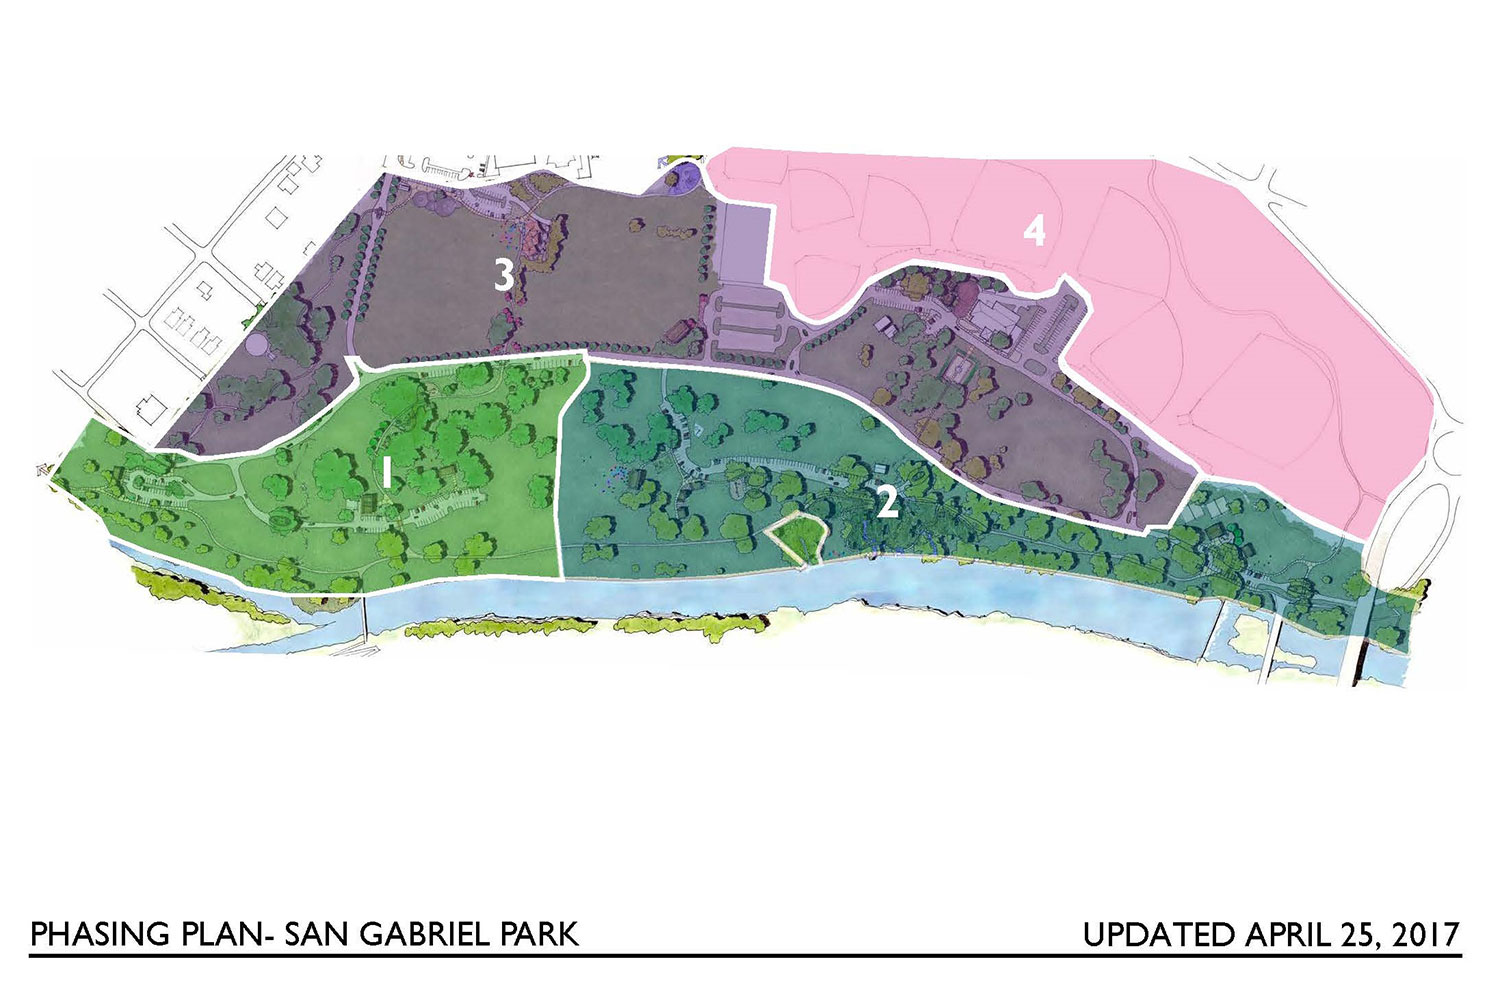 Phasing Plan for San Gabriel Park in Georgetown, TX